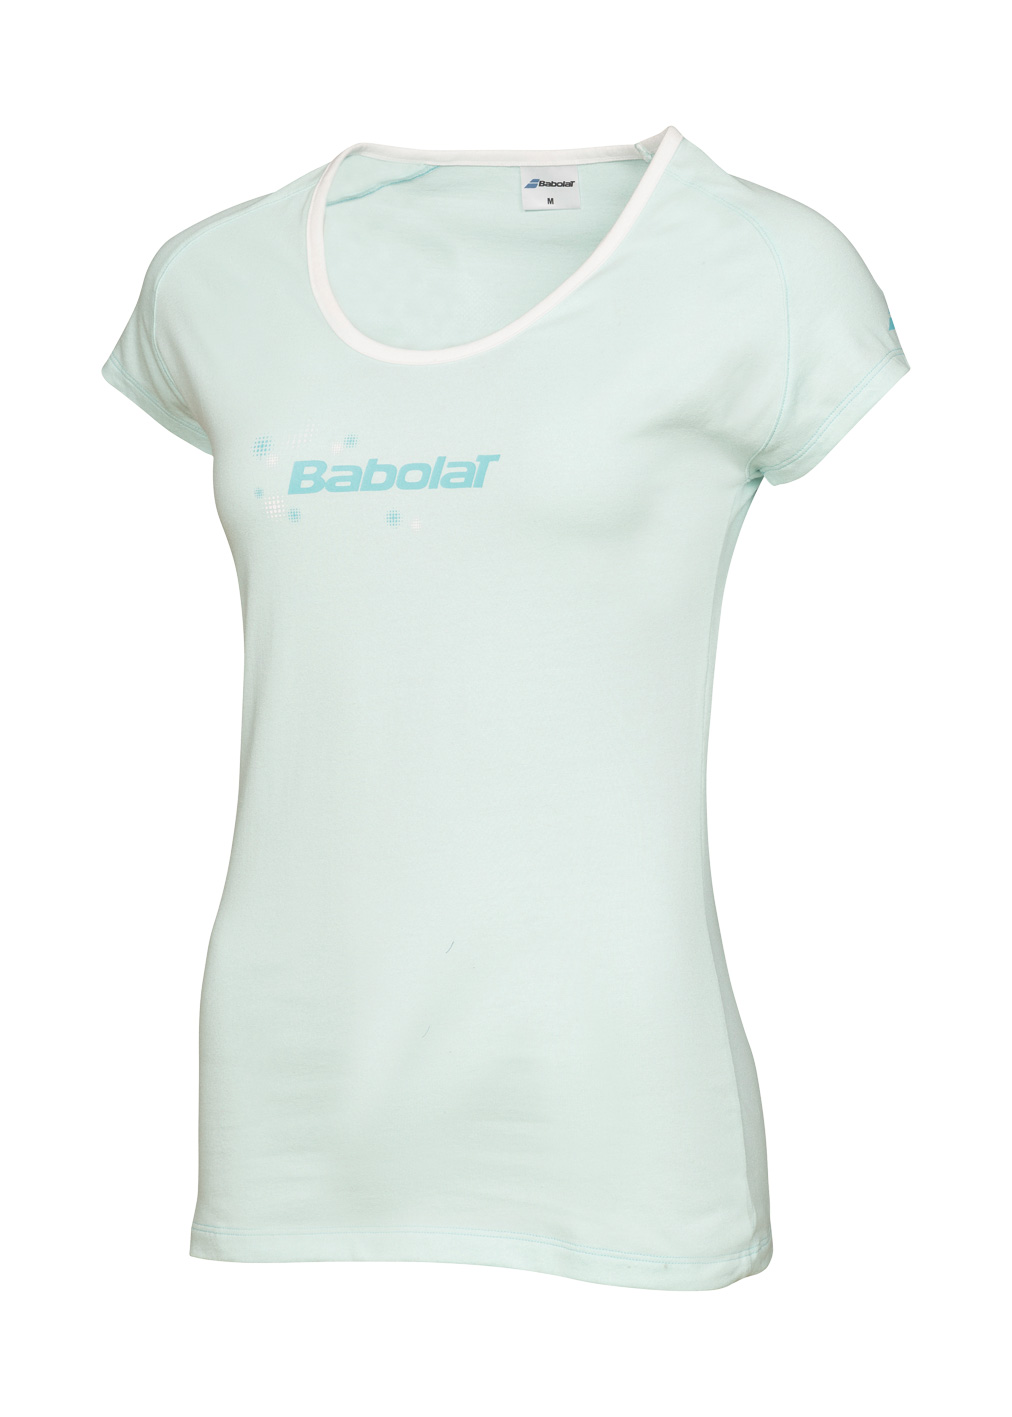 Babolat T-Shirt Girl Training Light Blue 2016 152